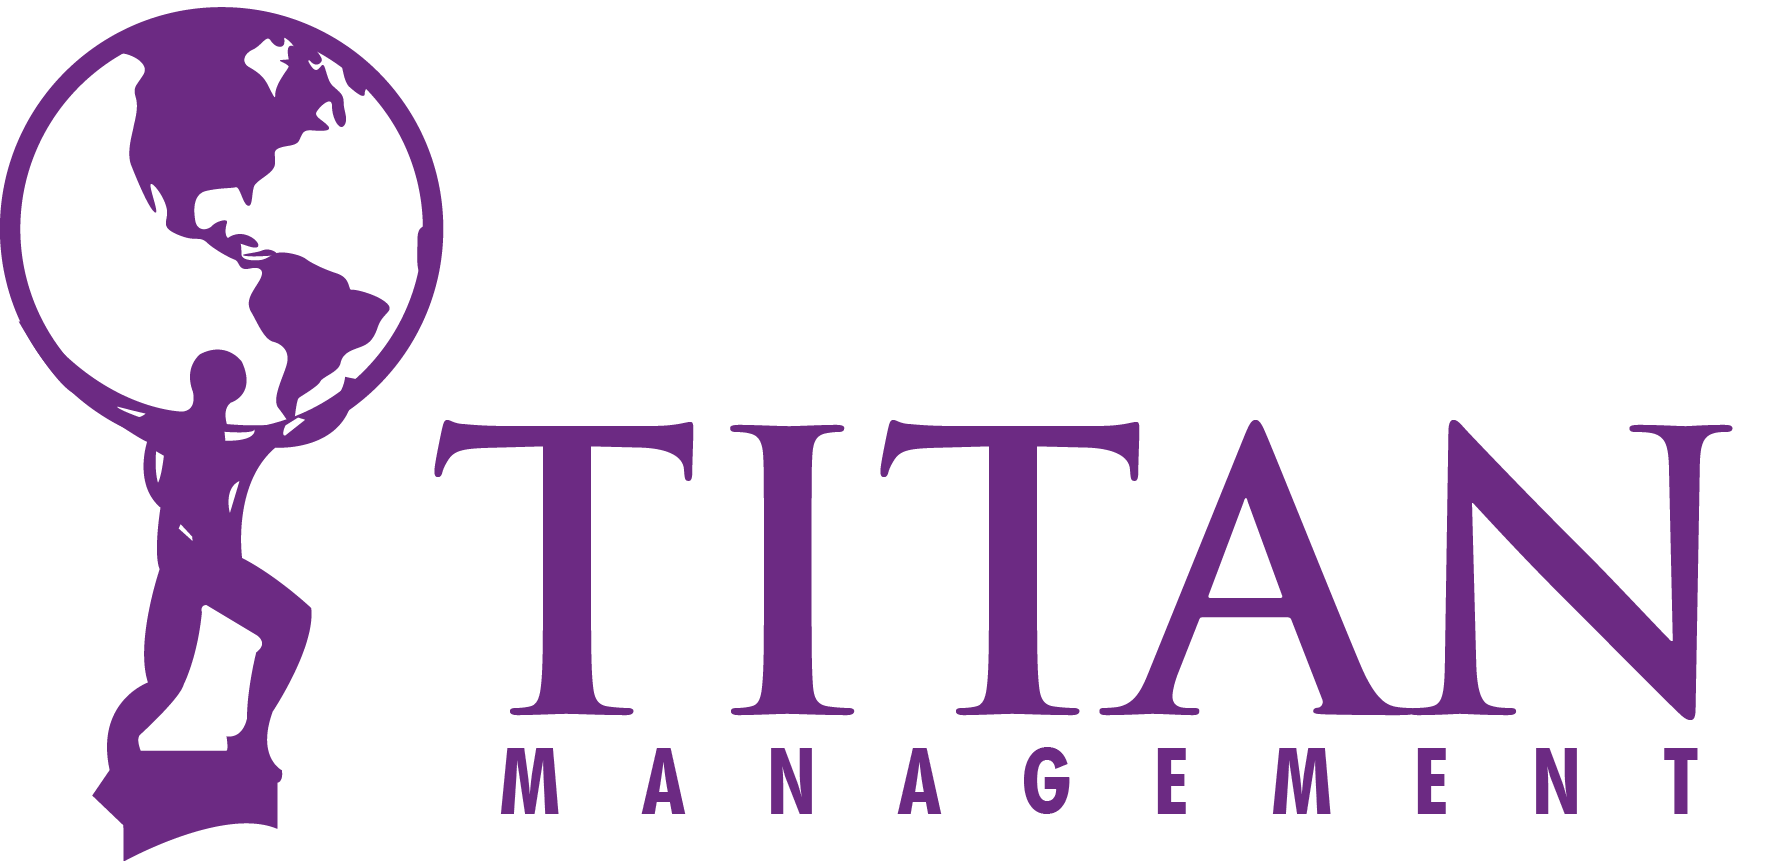 The Resumator Jobs Titan Management Career Page